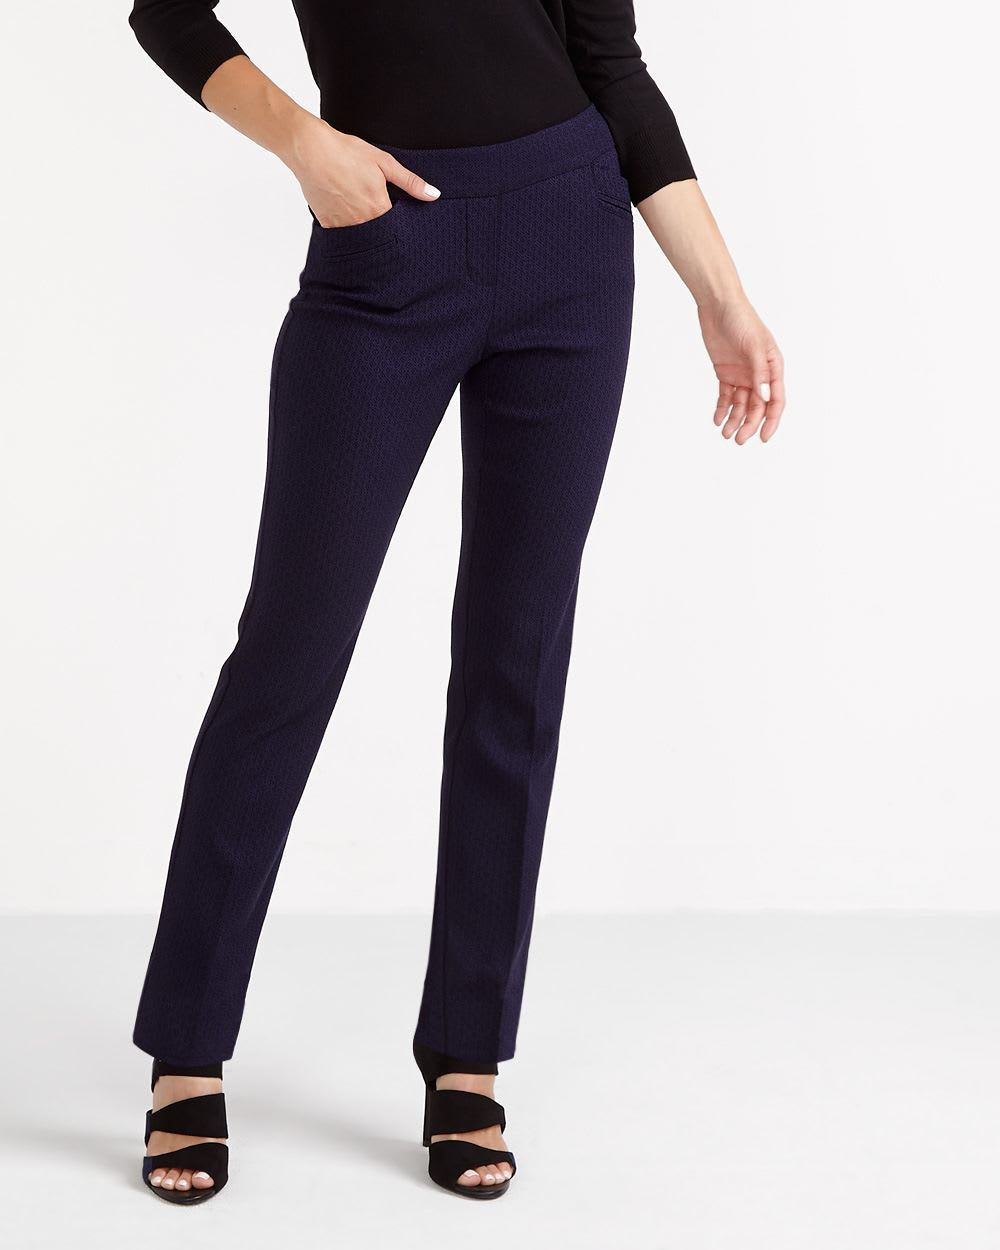 The Petite Iconic Printed Straight Leg Pants